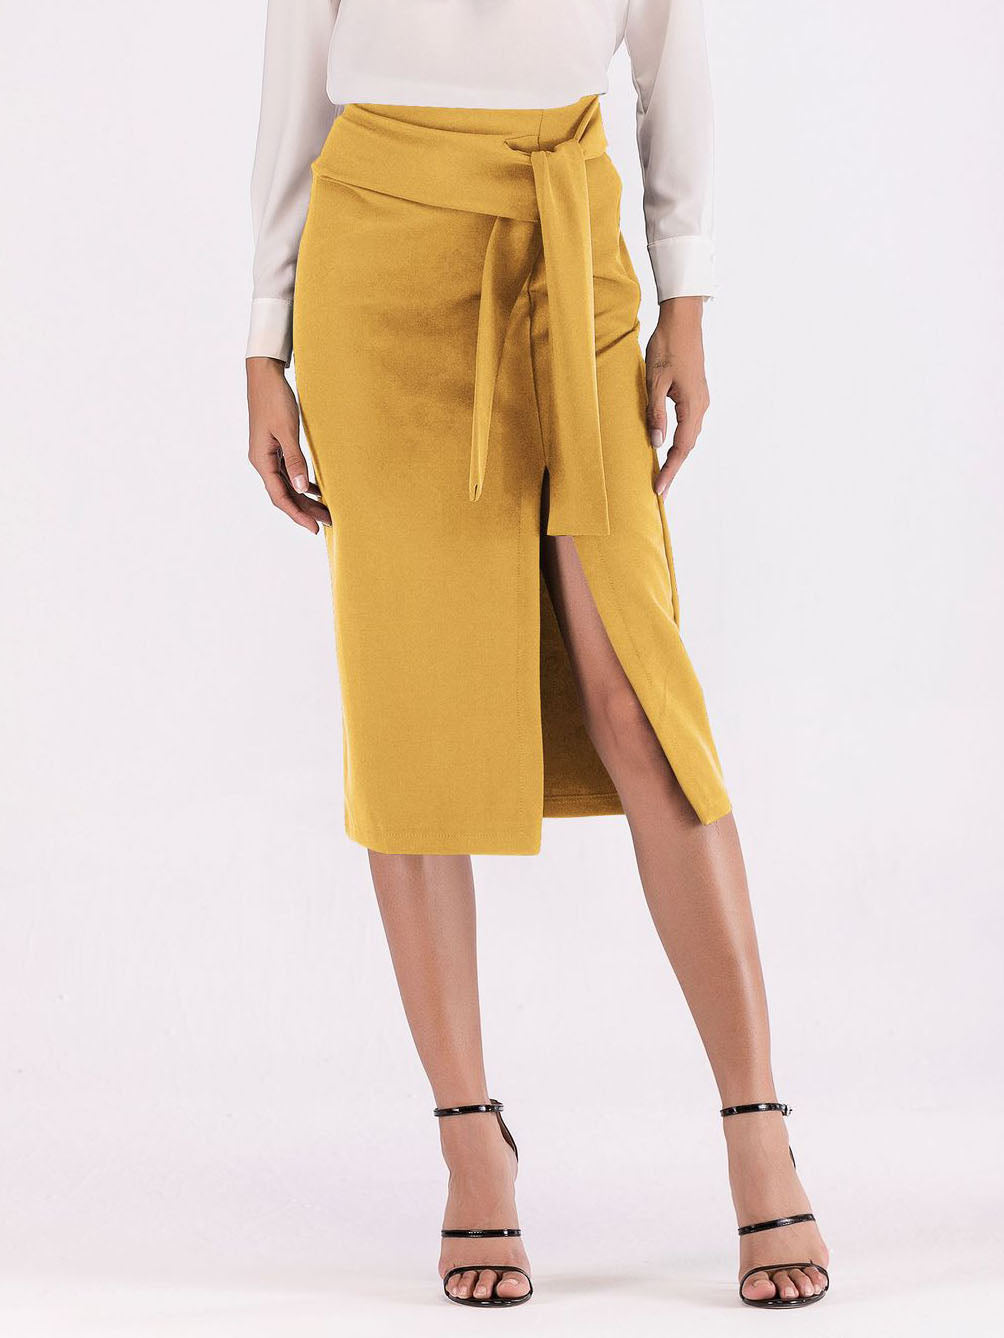 Spring New Women's Skirts Slit Small Sexy Slim Skirt Women